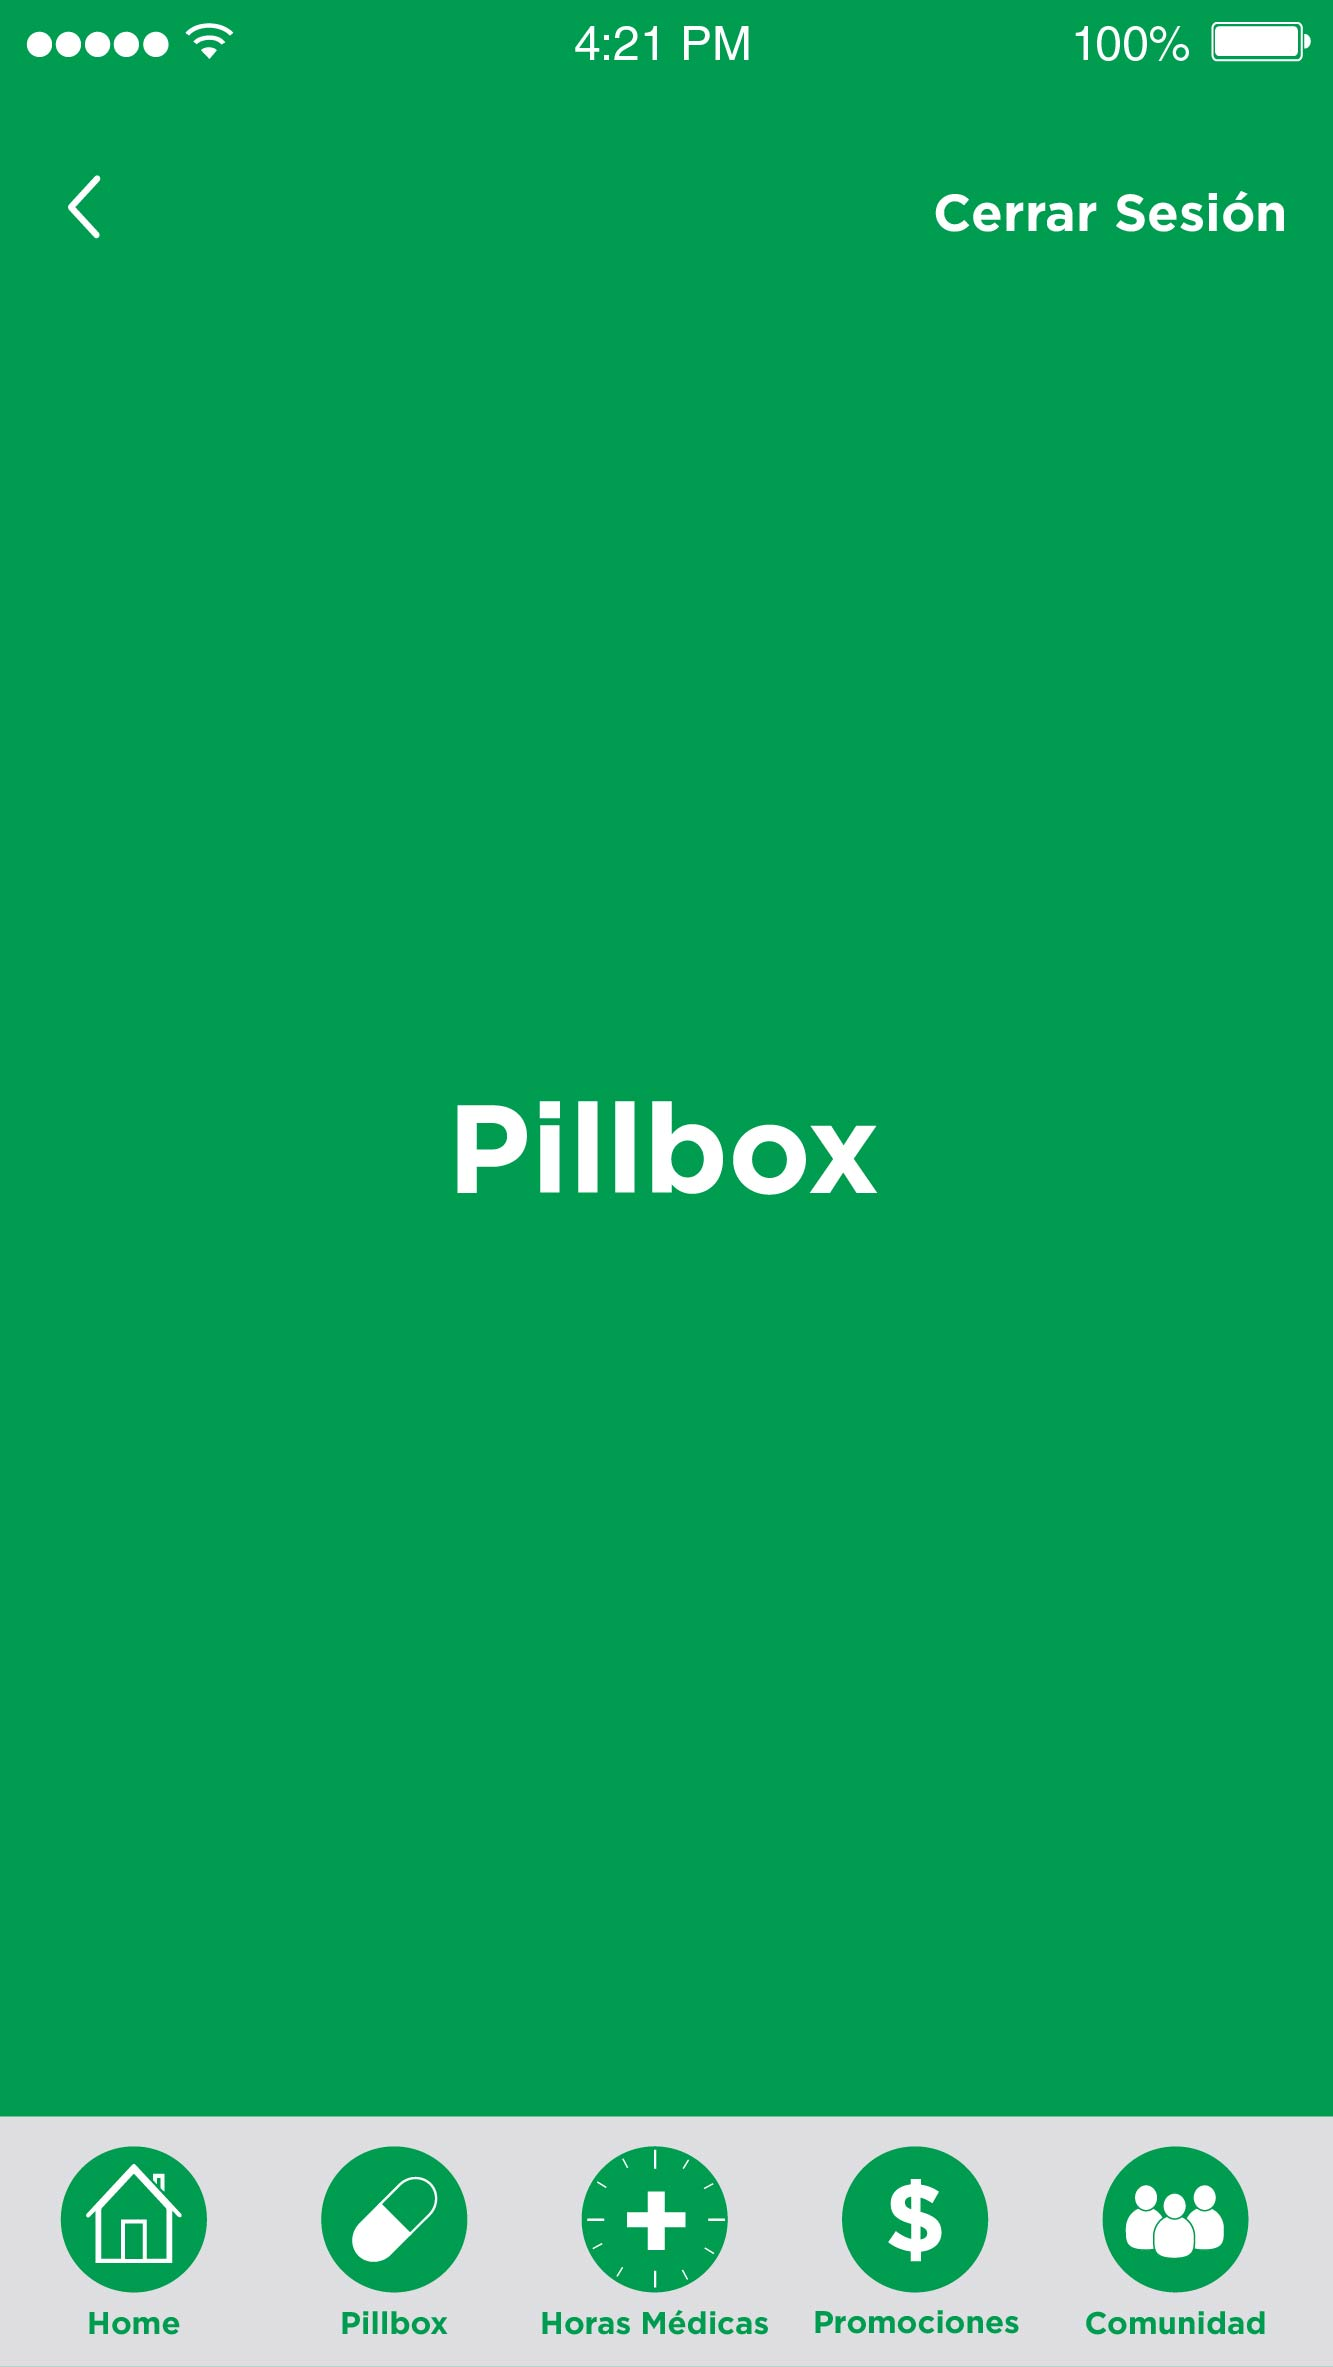 6thmockups__14. Pillbox .jpg